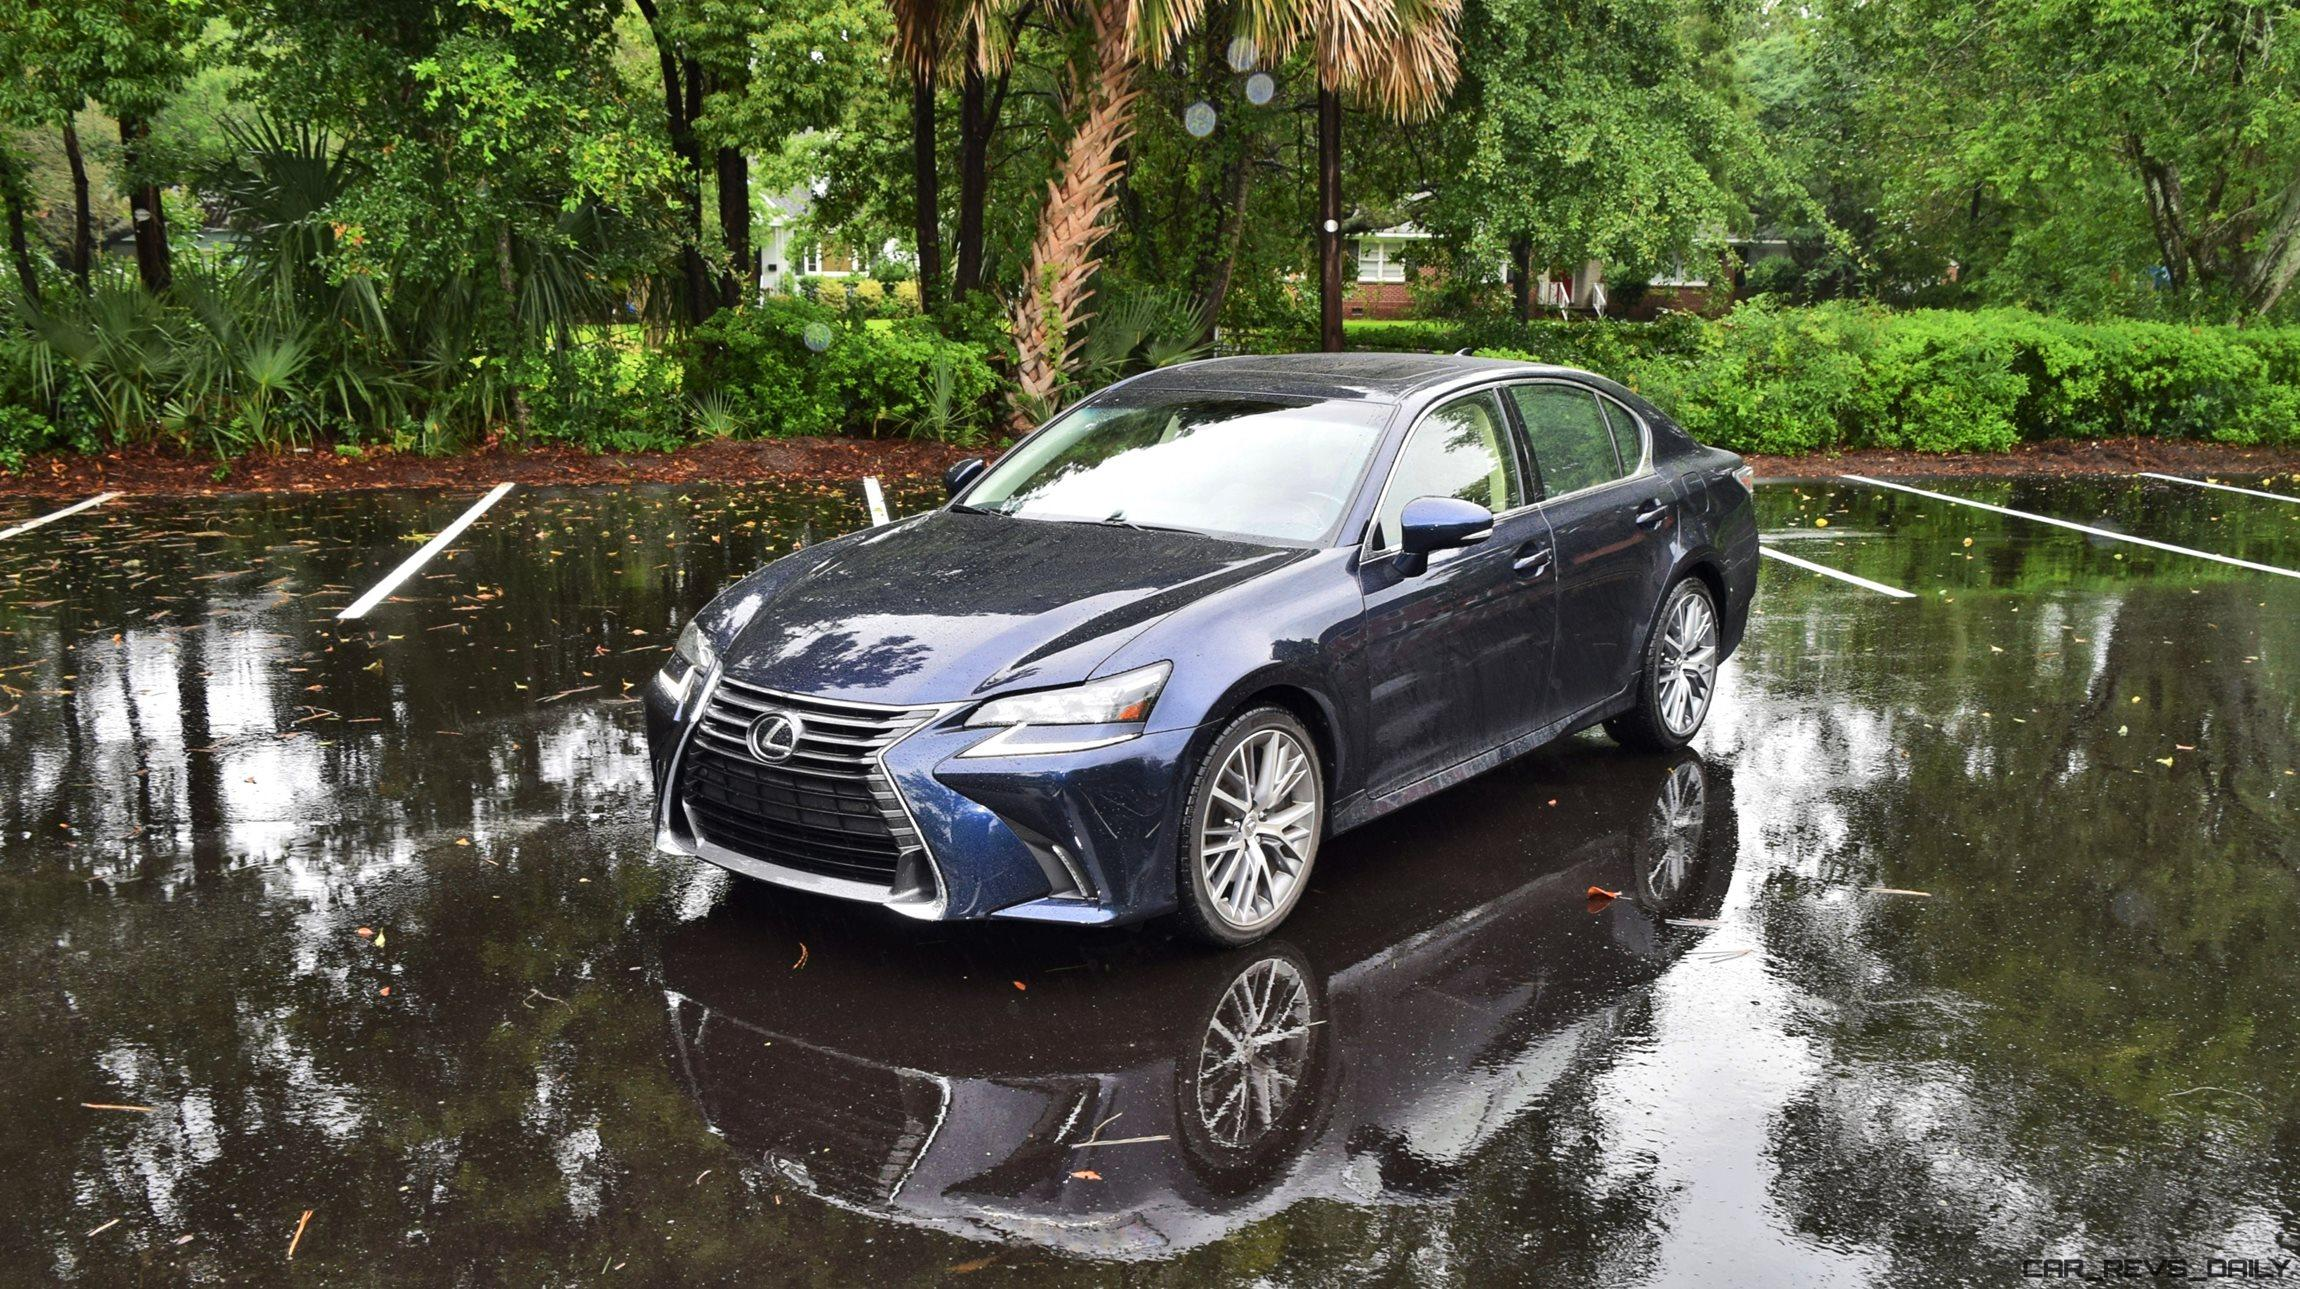 2017 Lexus GS350 RWD Luxury - Road Test Review + Drive Video!